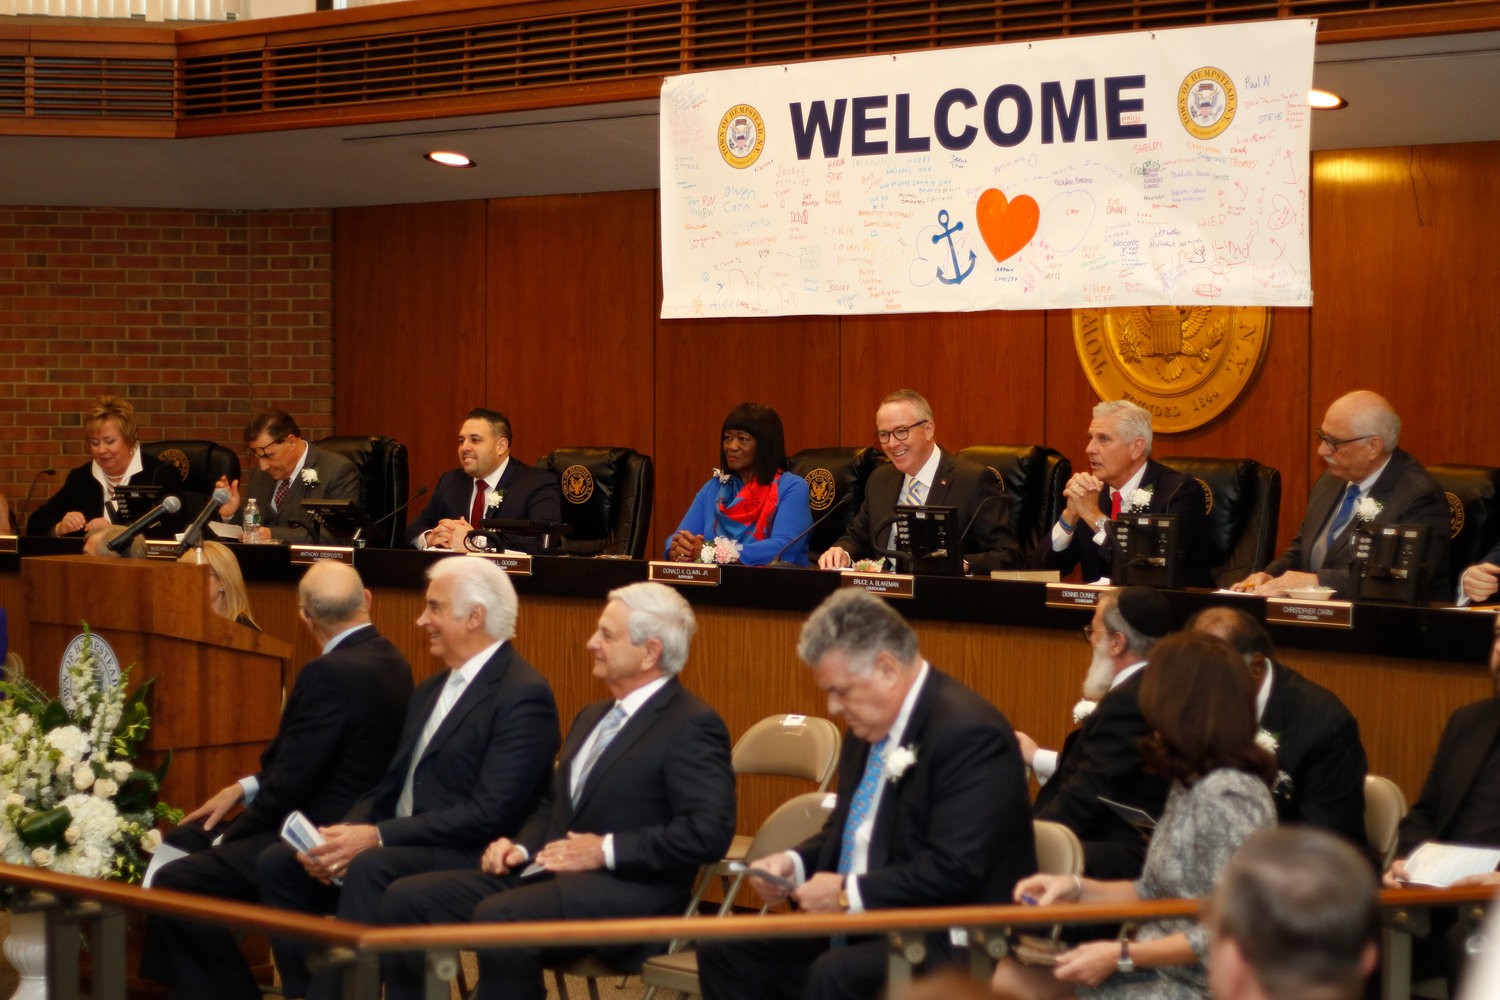 The Town of Hempstead Board, minus Carini, as well as dignitaries at Tuesday's festivities.